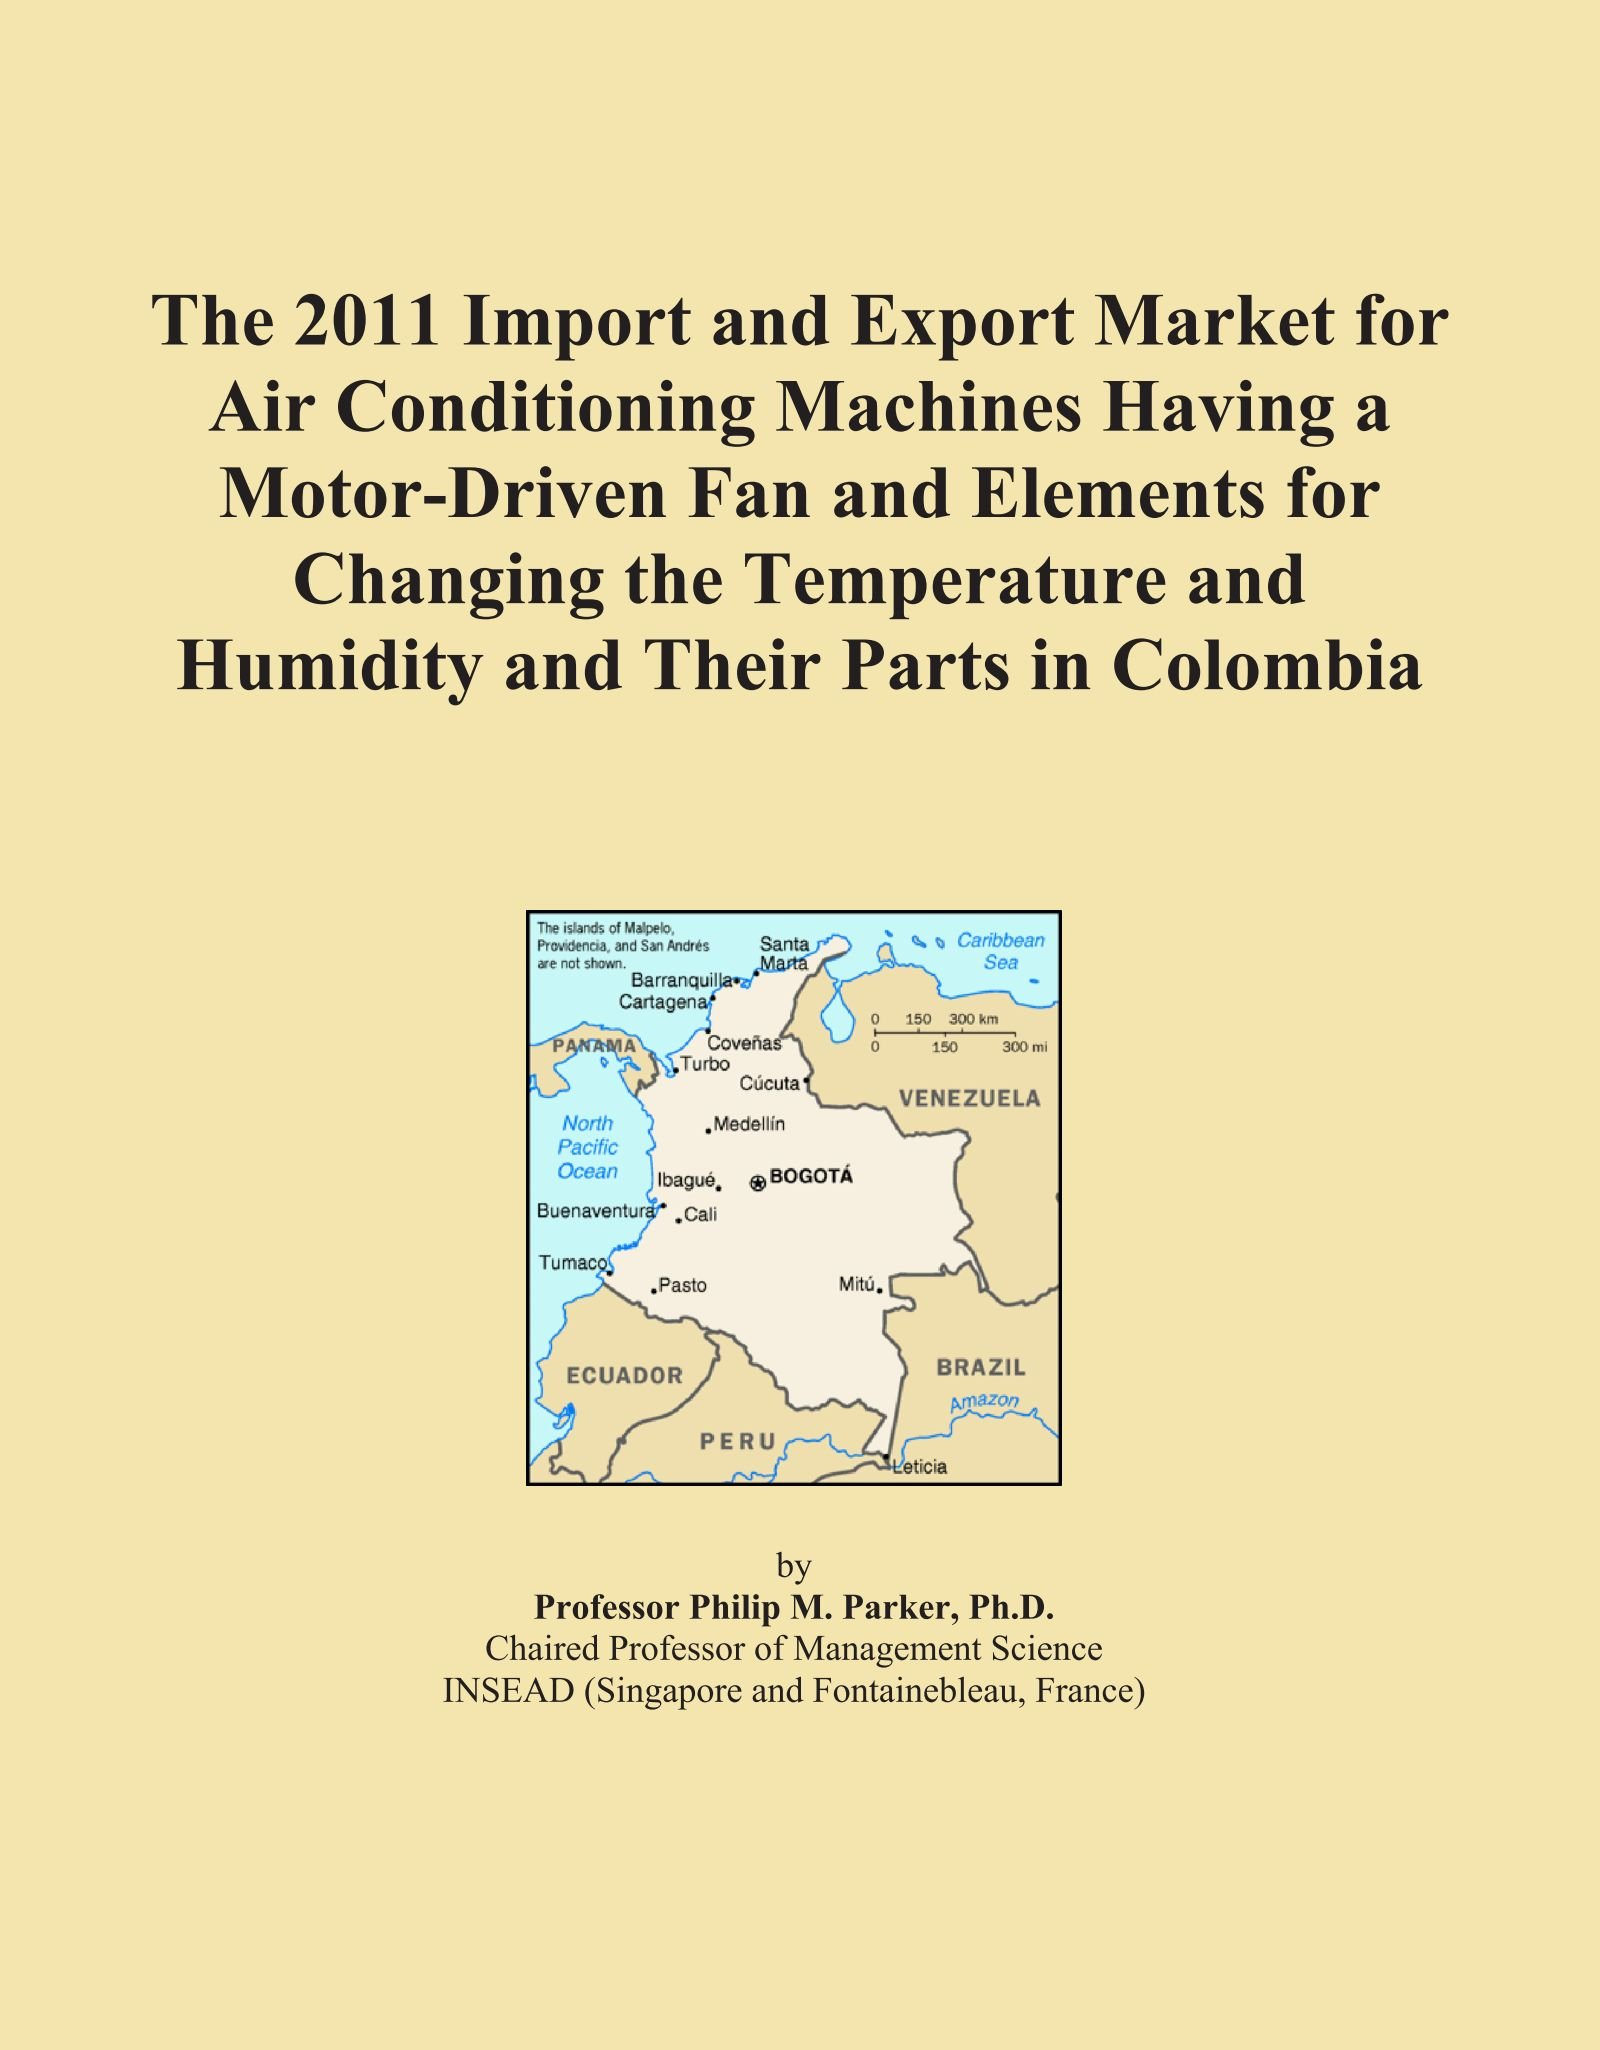 The 2011 Import and Export Market for Air Conditioning Machines Having a Motor-Driven Fan and Elements for Changing the Temperature and Humidity and Their Parts in Colombia ebook